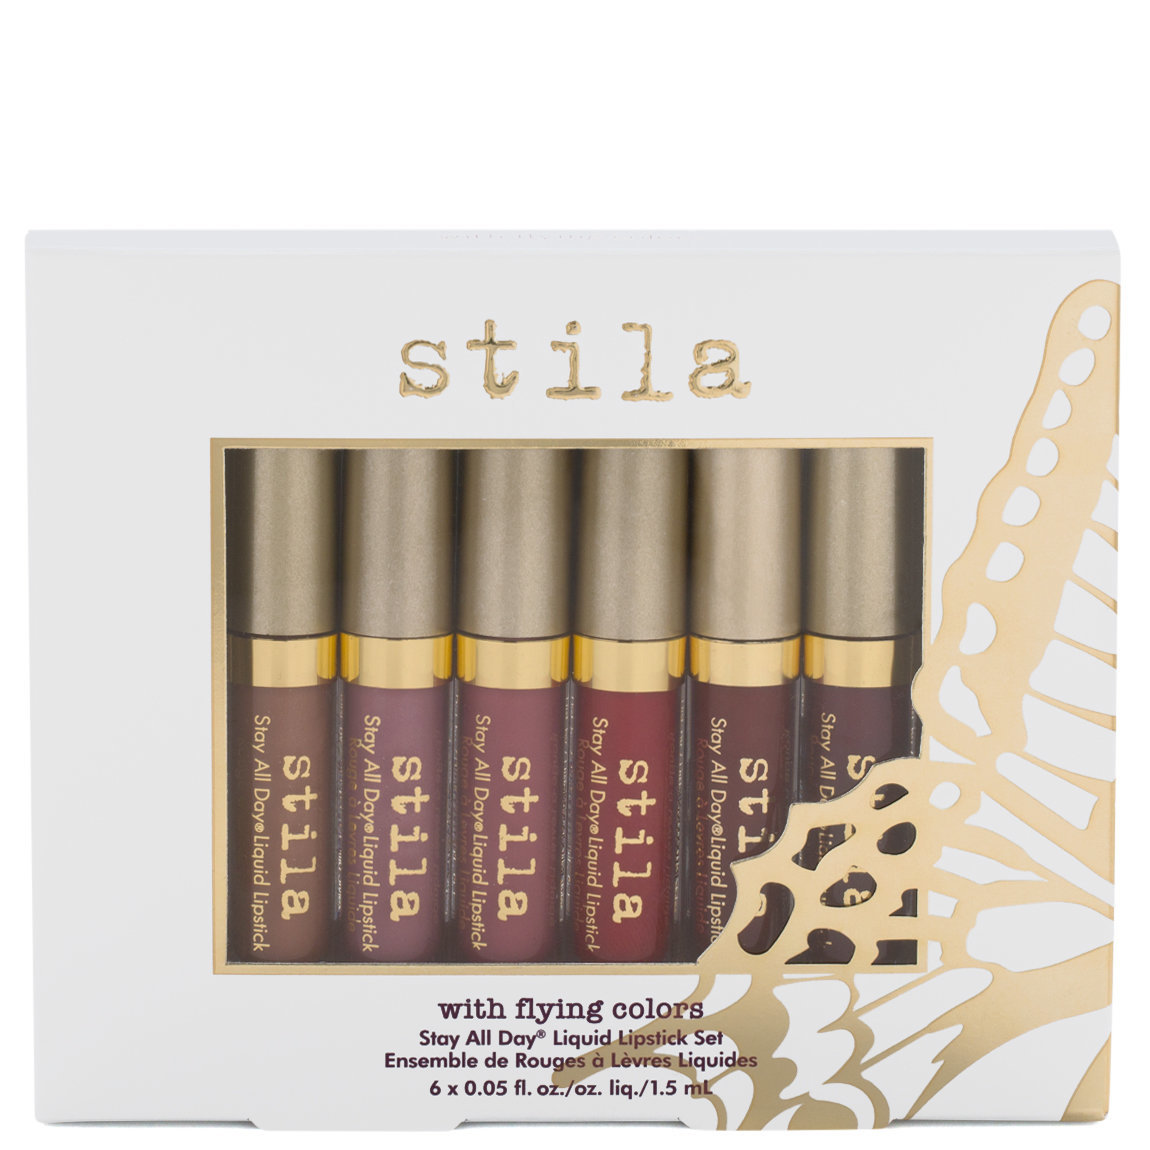 Stila With Flying Colors - Stay All Day Liquid Lipstick Set product smear.